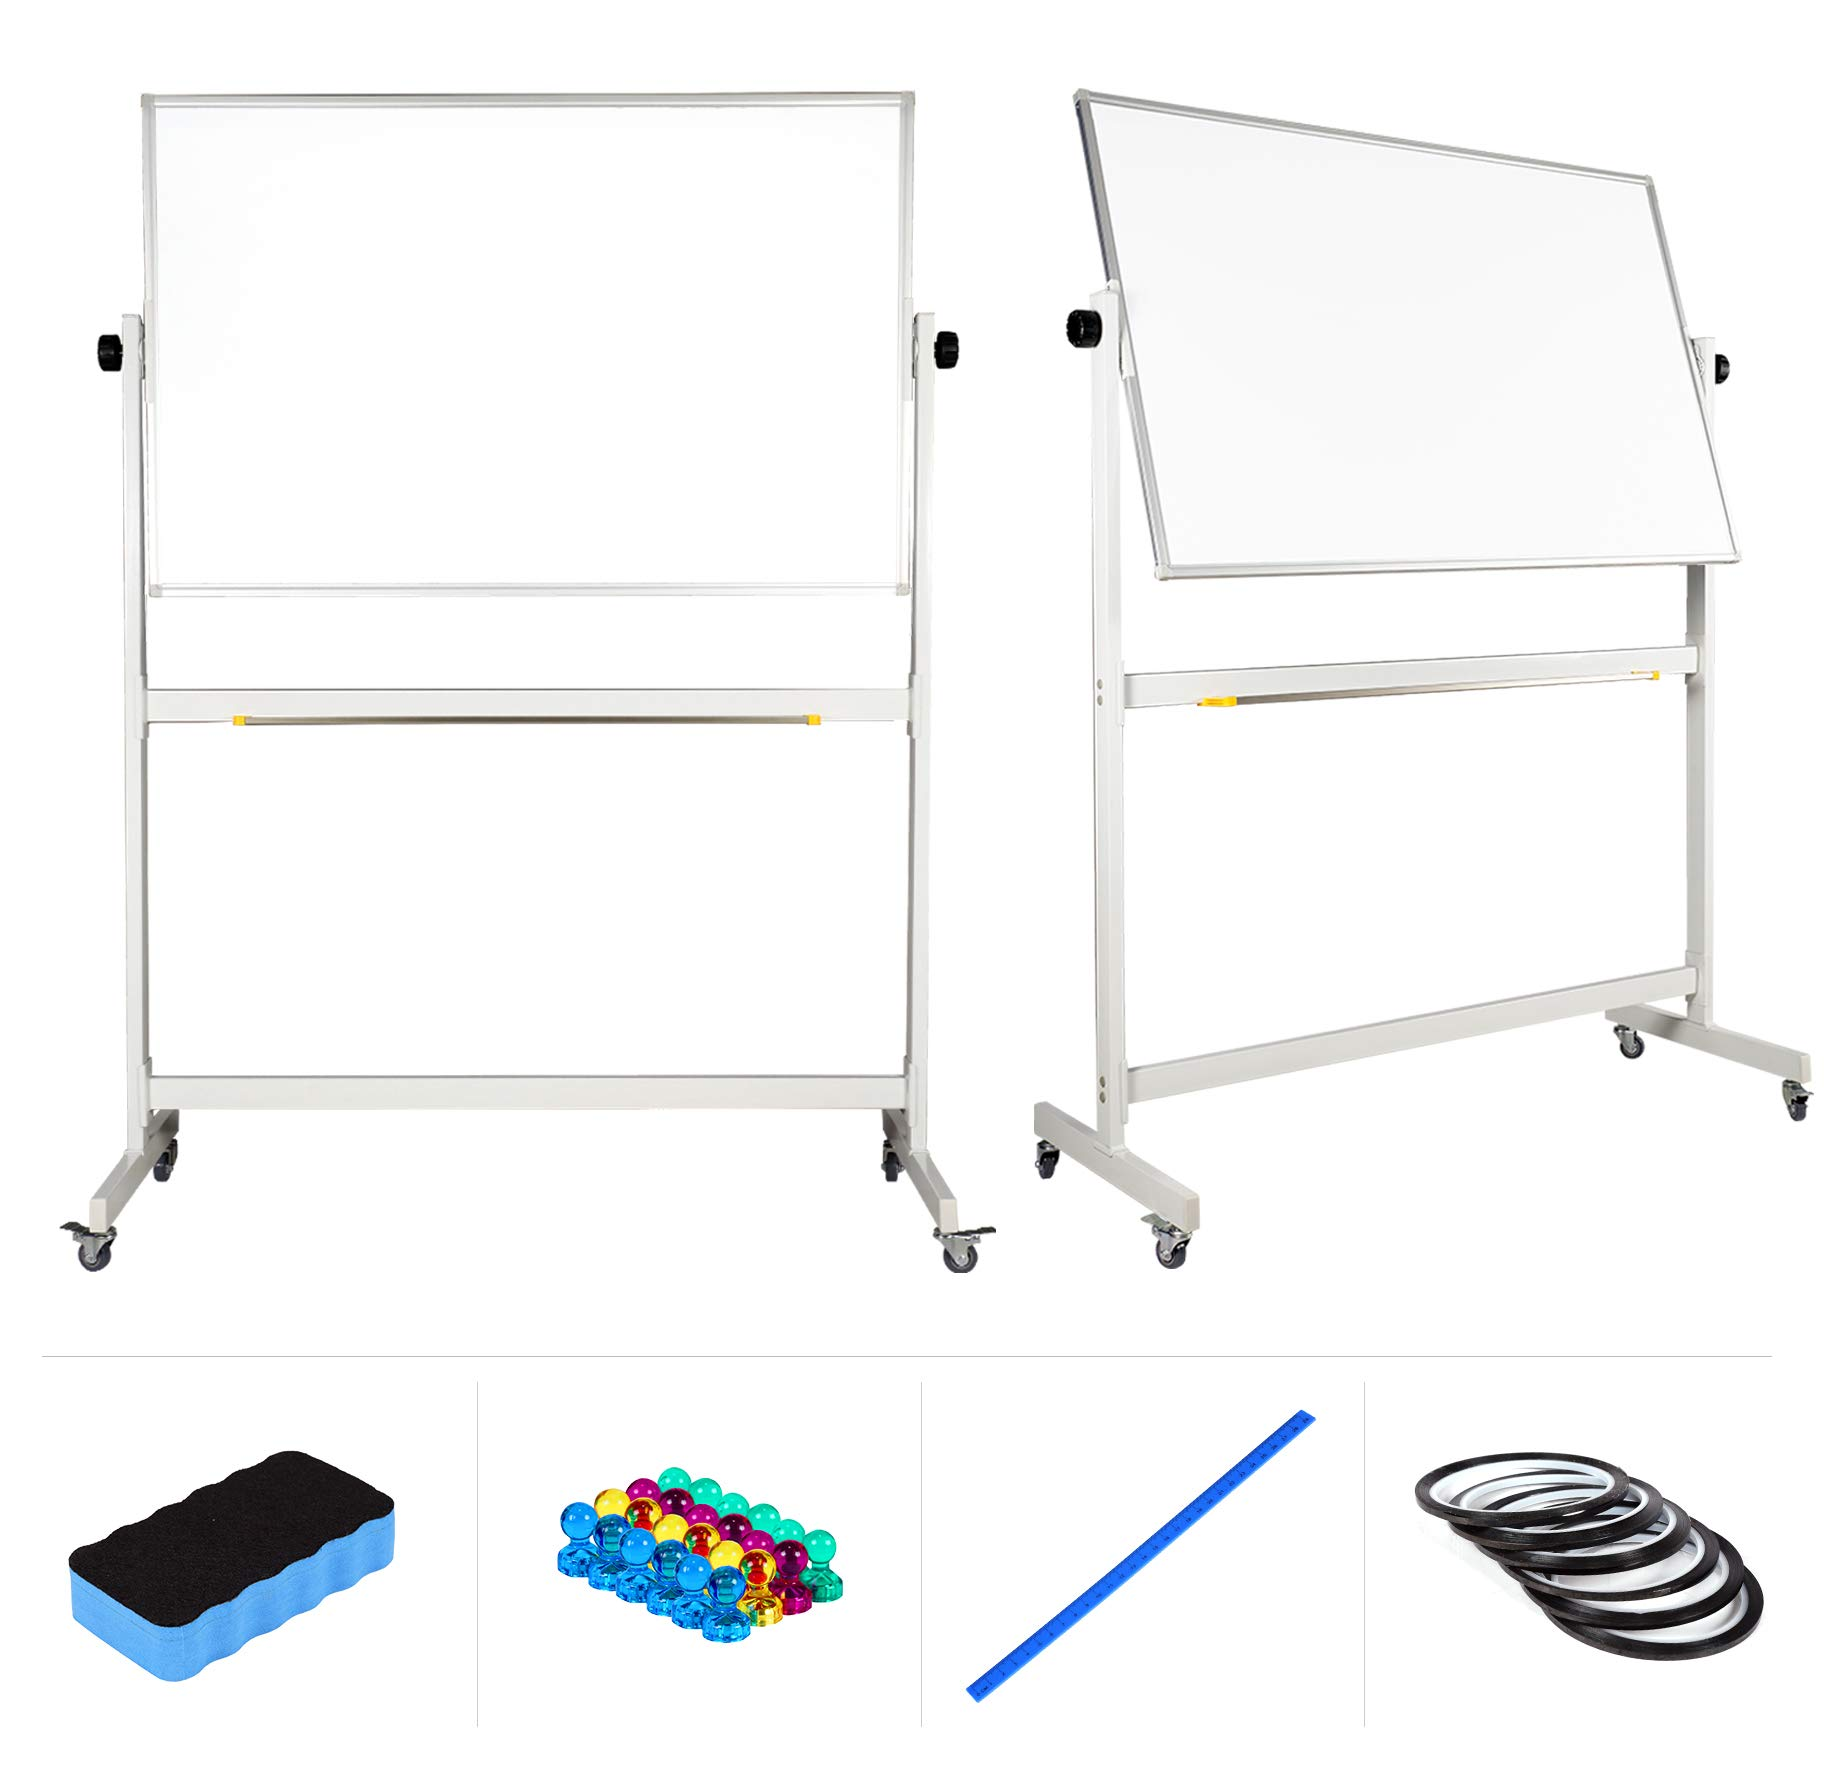 Mobile Whiteboard 48'' x 32'' inch Magnetic Double Sided Flip Over Dry Erase Reversible Portable Home Office Classroom Mobile White Board with Magnetic Eraser Ruler 24 Push Pin Magnets 6 Gridding Tapes